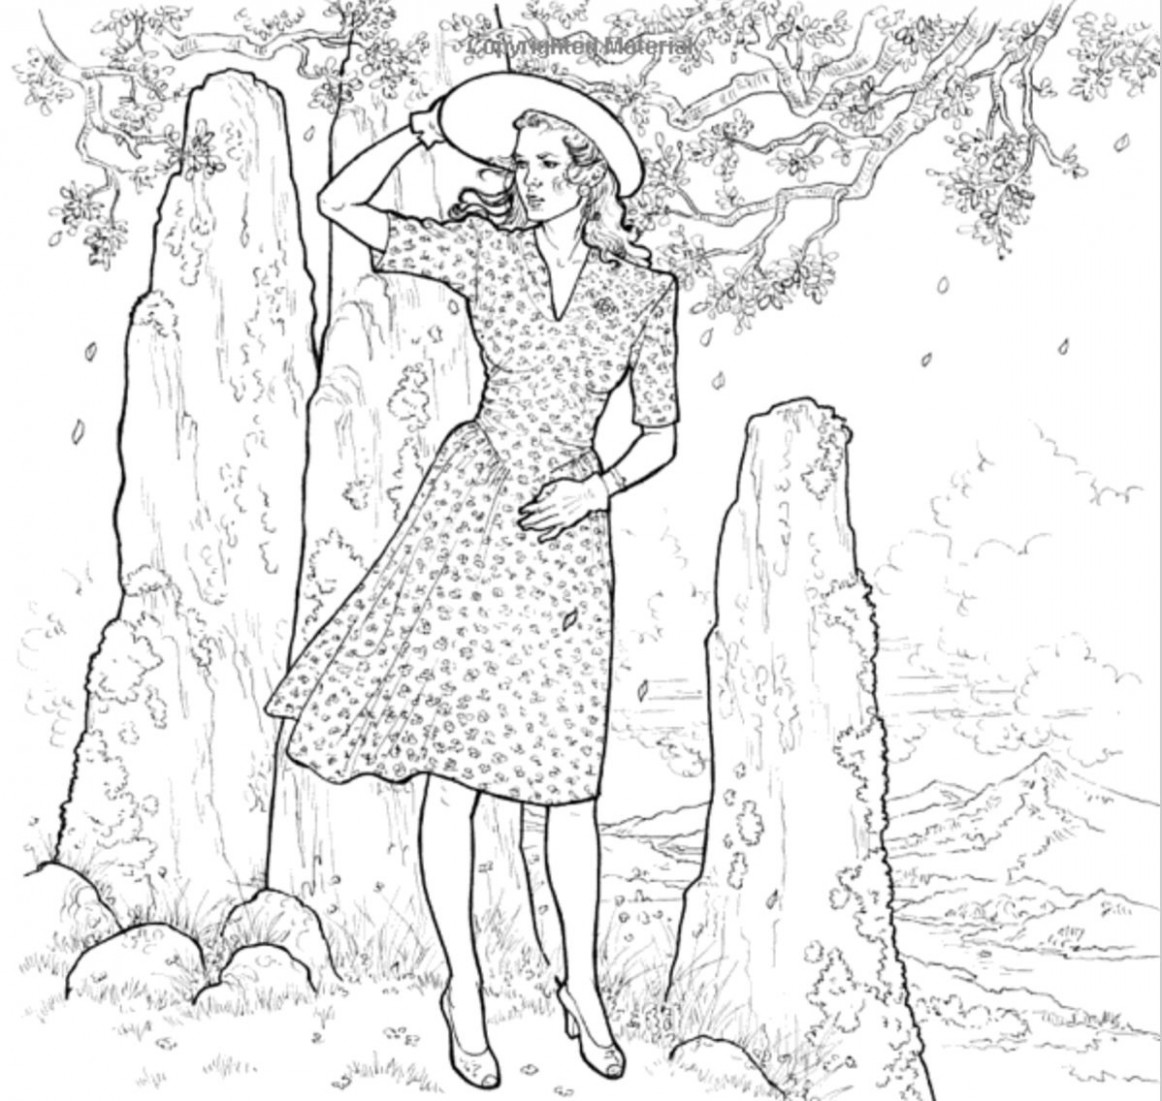 16 Things to Expect from the New 'Outlander' Coloring Book